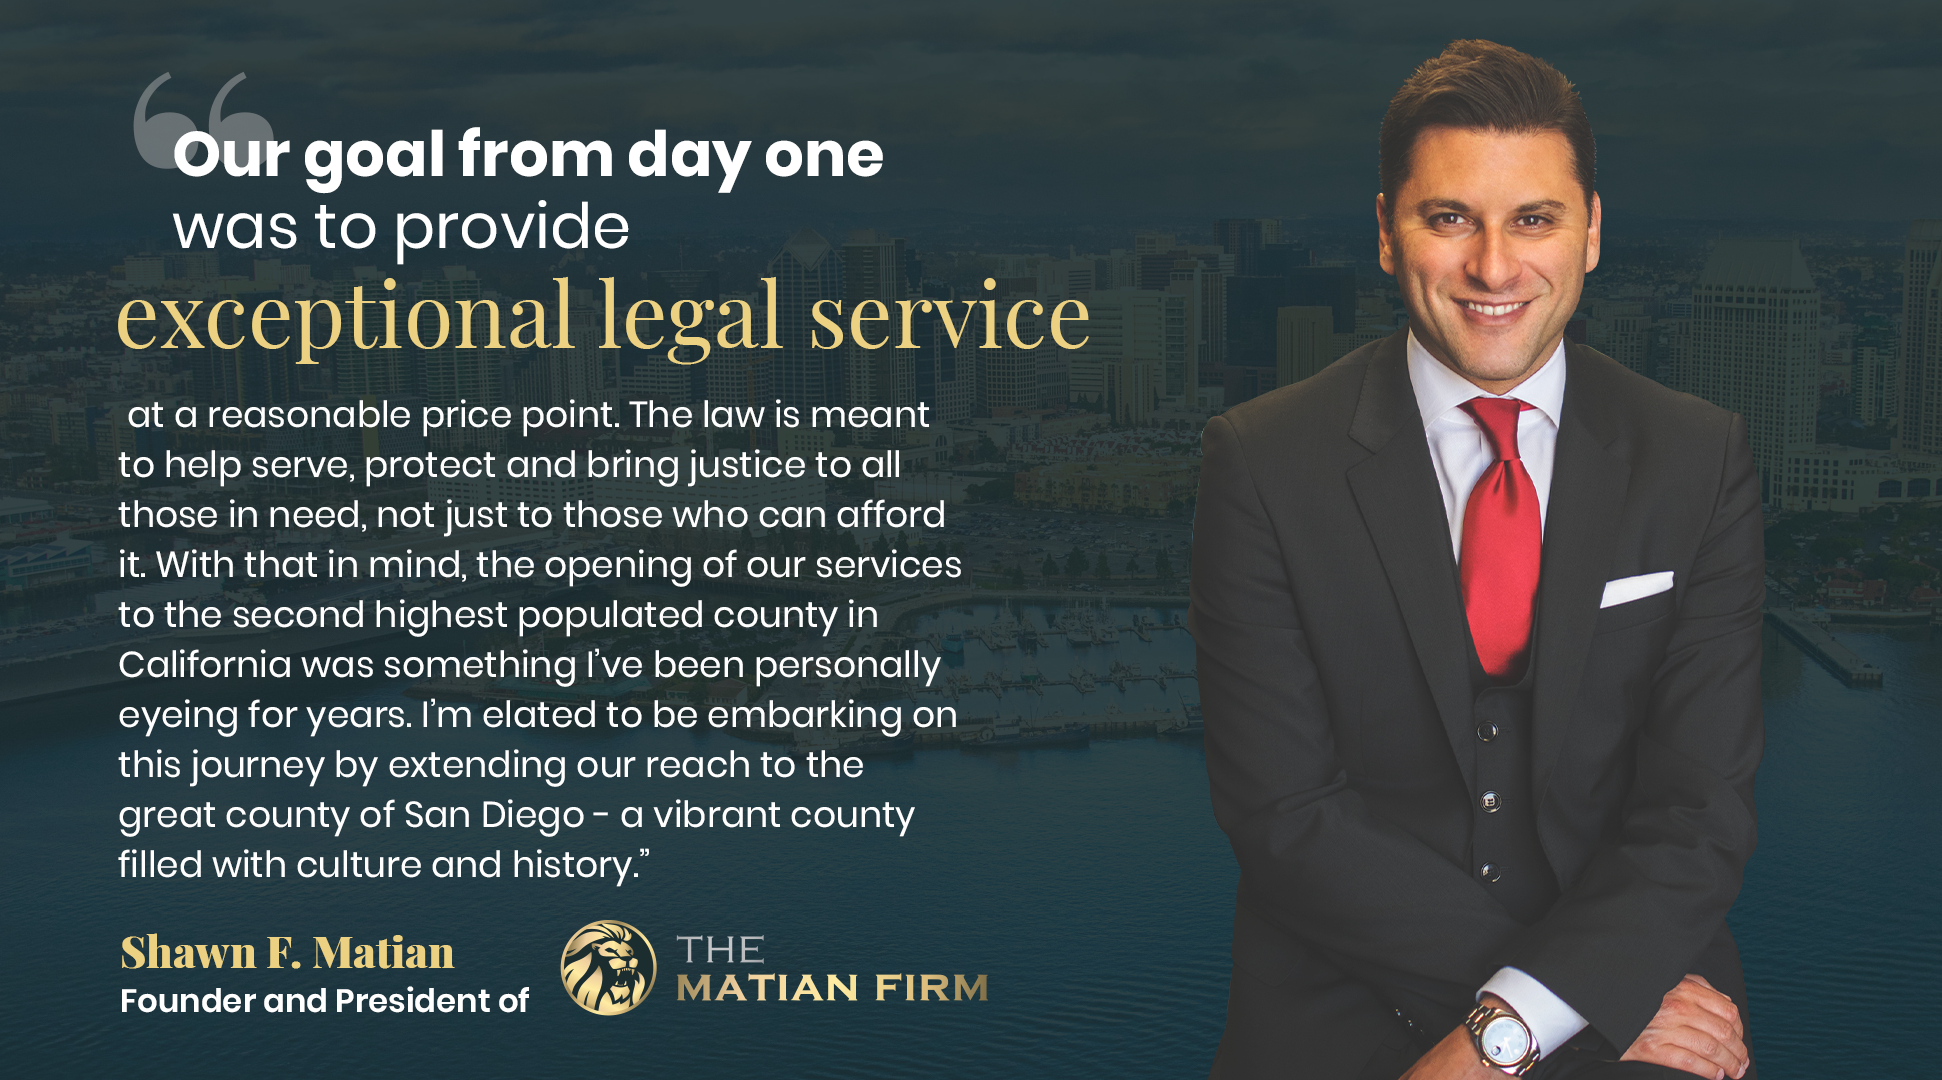 The Matian Firm Opens New Law Offices in San Diego, CA